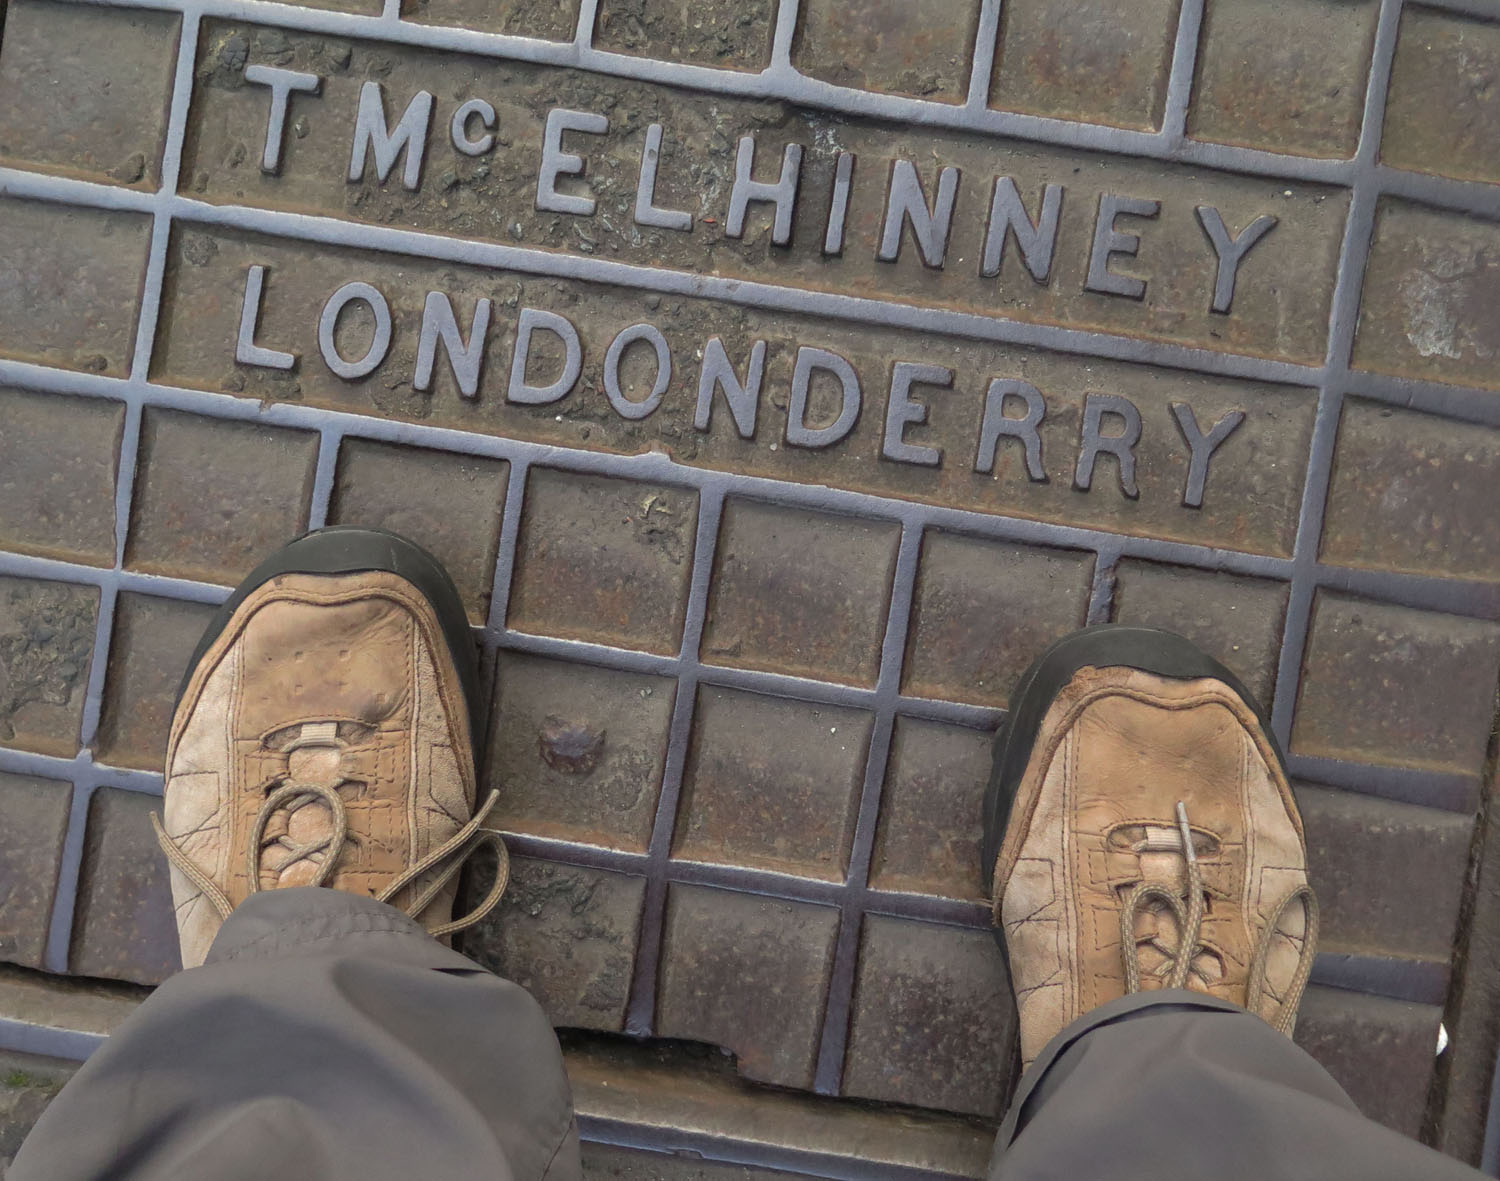 Northern-Ireland-Derry-Londonderry-Street-Scenes-Manhole-Cover